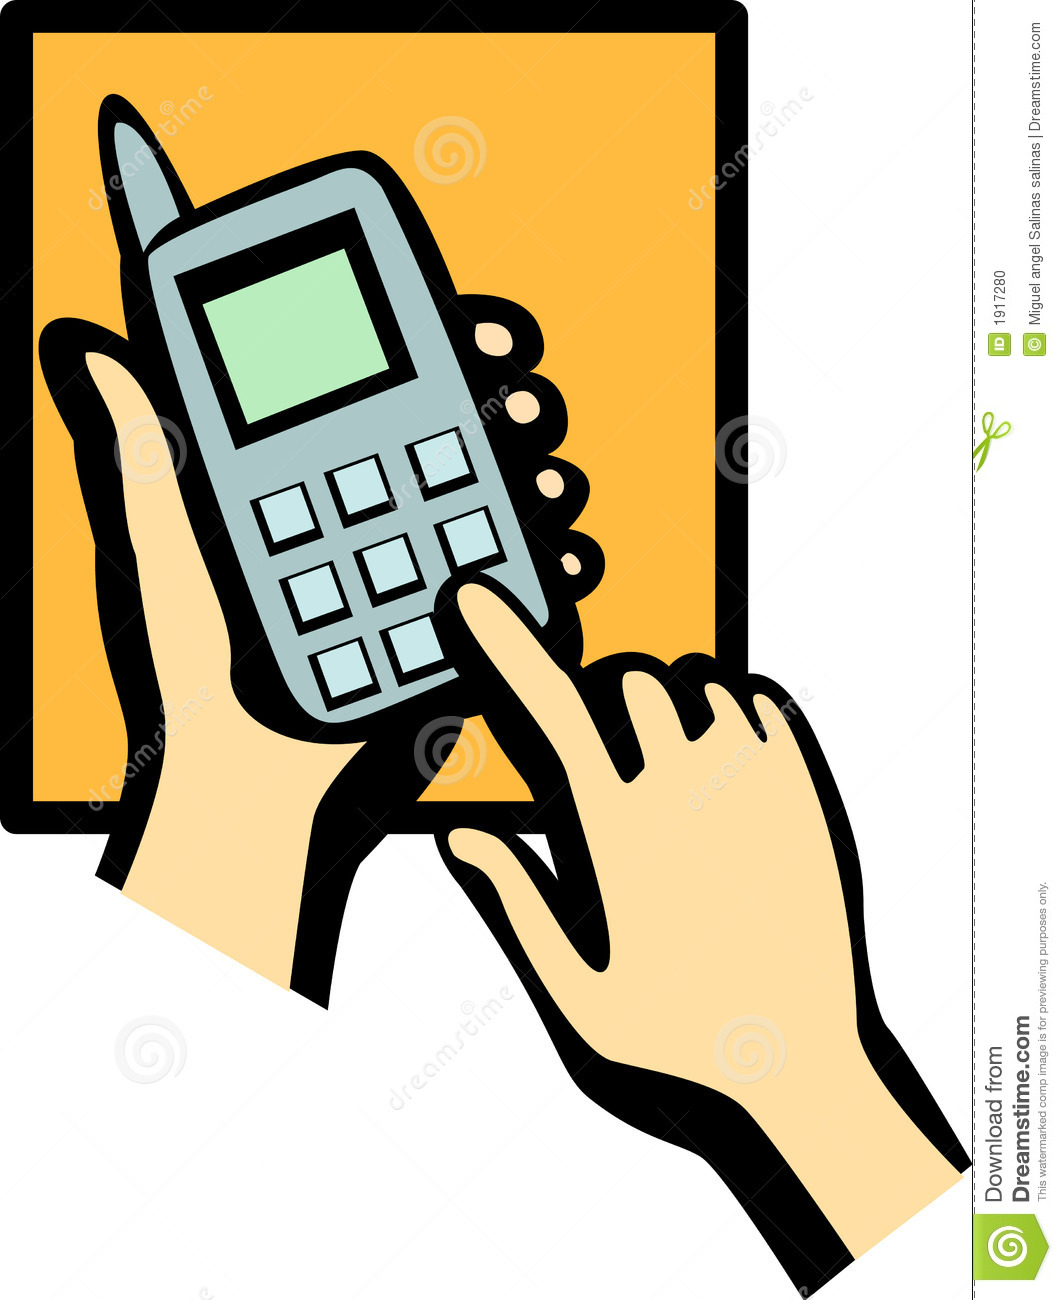 Cell Phone Dialing Vector Illustration Stock Photo - Image: 1917280